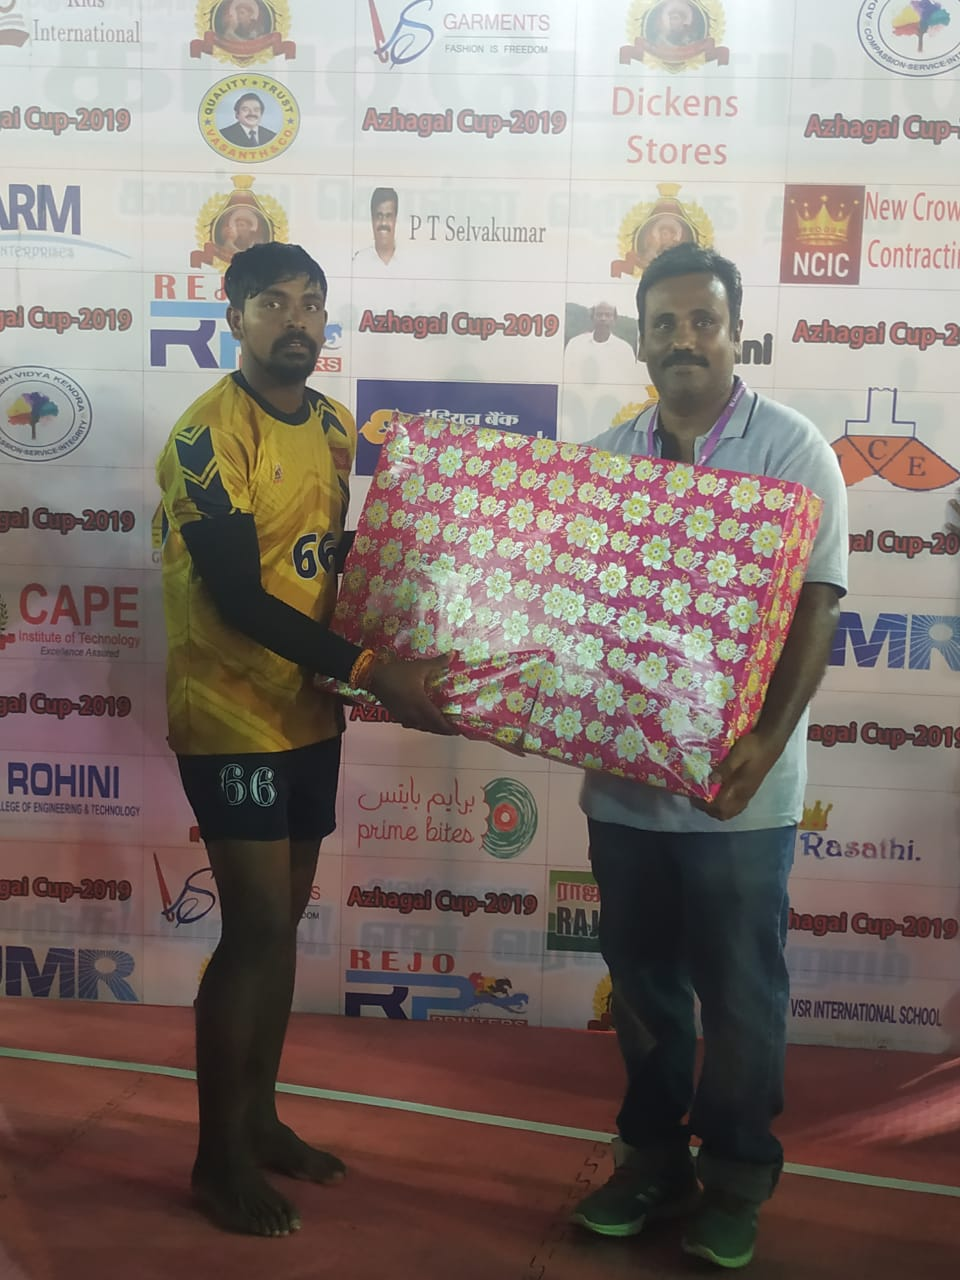 Chandran Ranjit - Player of the Tournament (Men's)